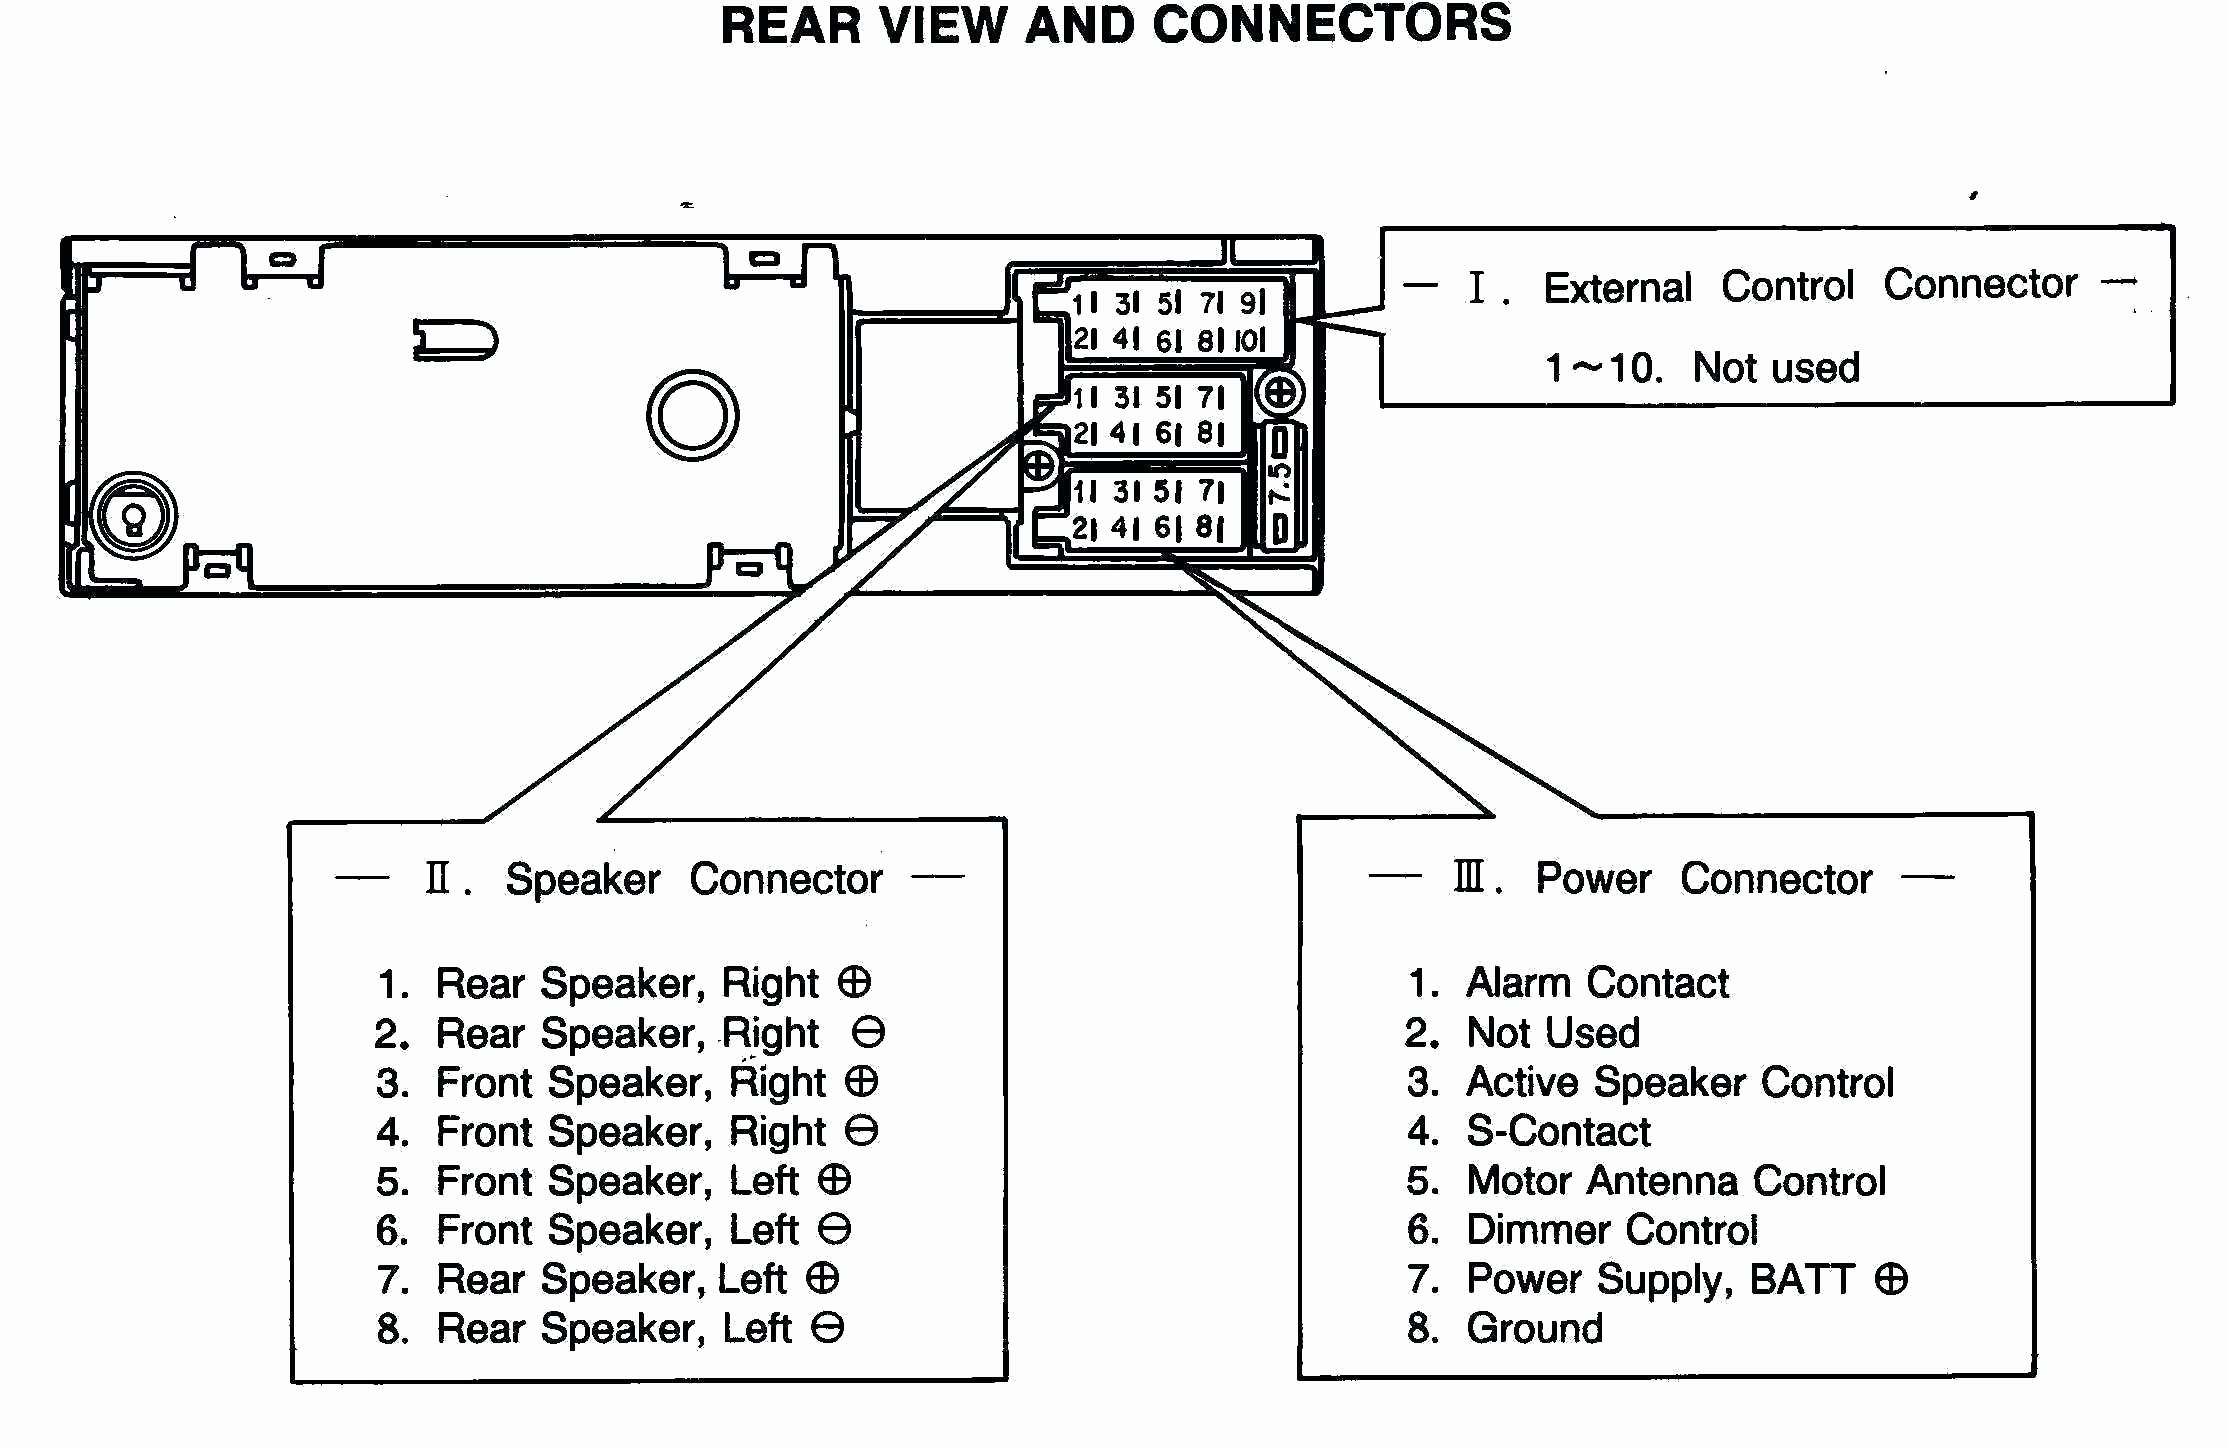 Flex Lite Fan Wiring Diagram - Wiring Diagrams One - Flex A Lite Fan Controller Wiring Diagram